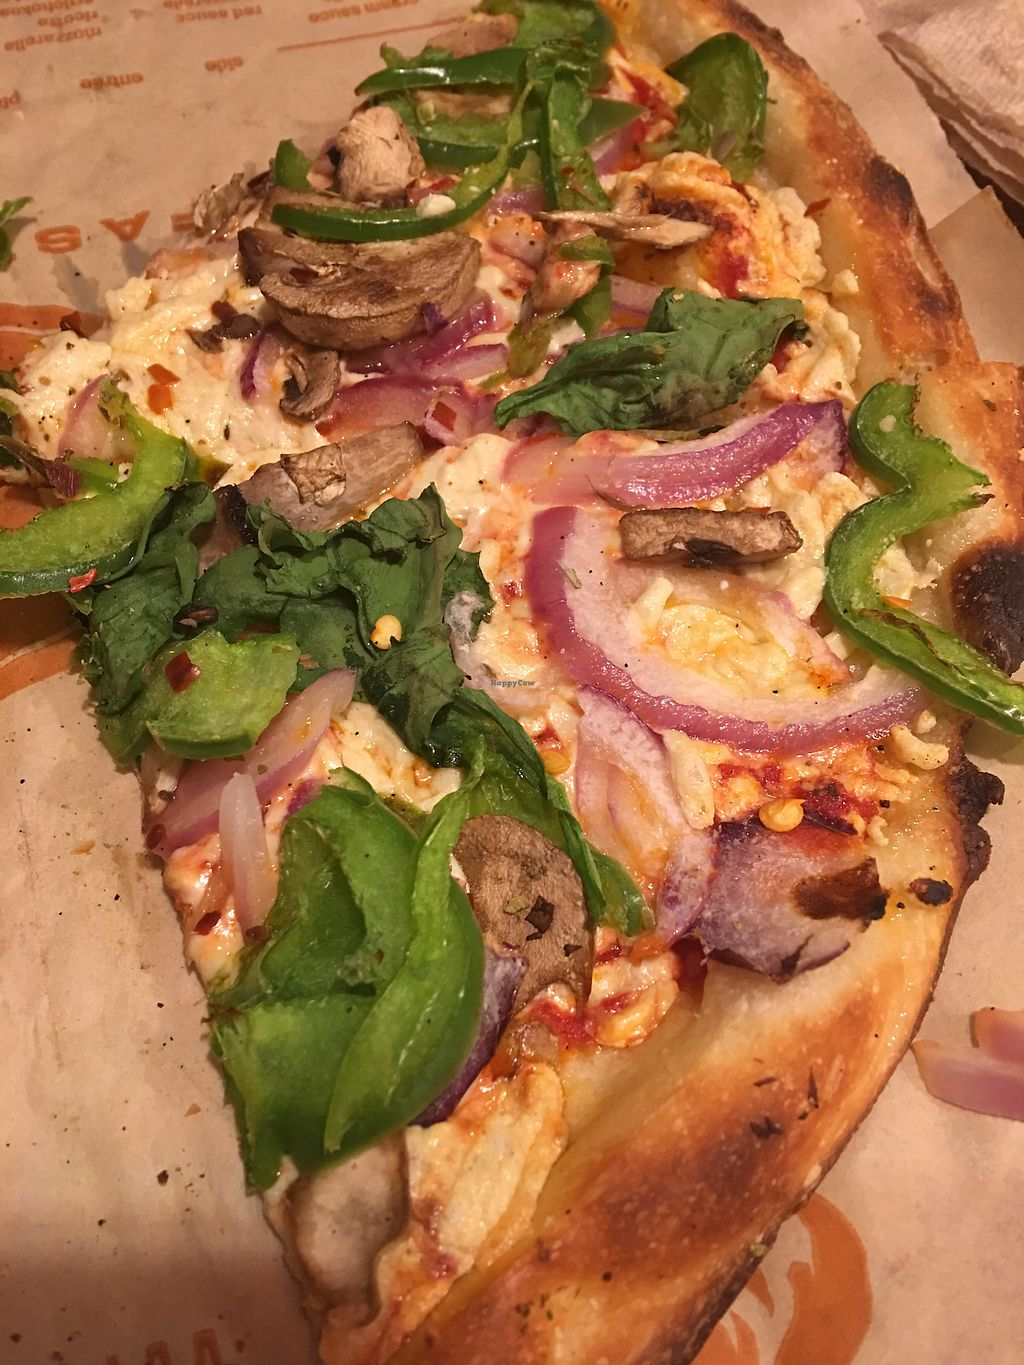 """Photo of Blaze Pizza  by <a href=""""/members/profile/HeatherArmstrong"""">HeatherArmstrong</a> <br/>Good  <br/> November 30, 2017  - <a href='/contact/abuse/image/81159/330709'>Report</a>"""